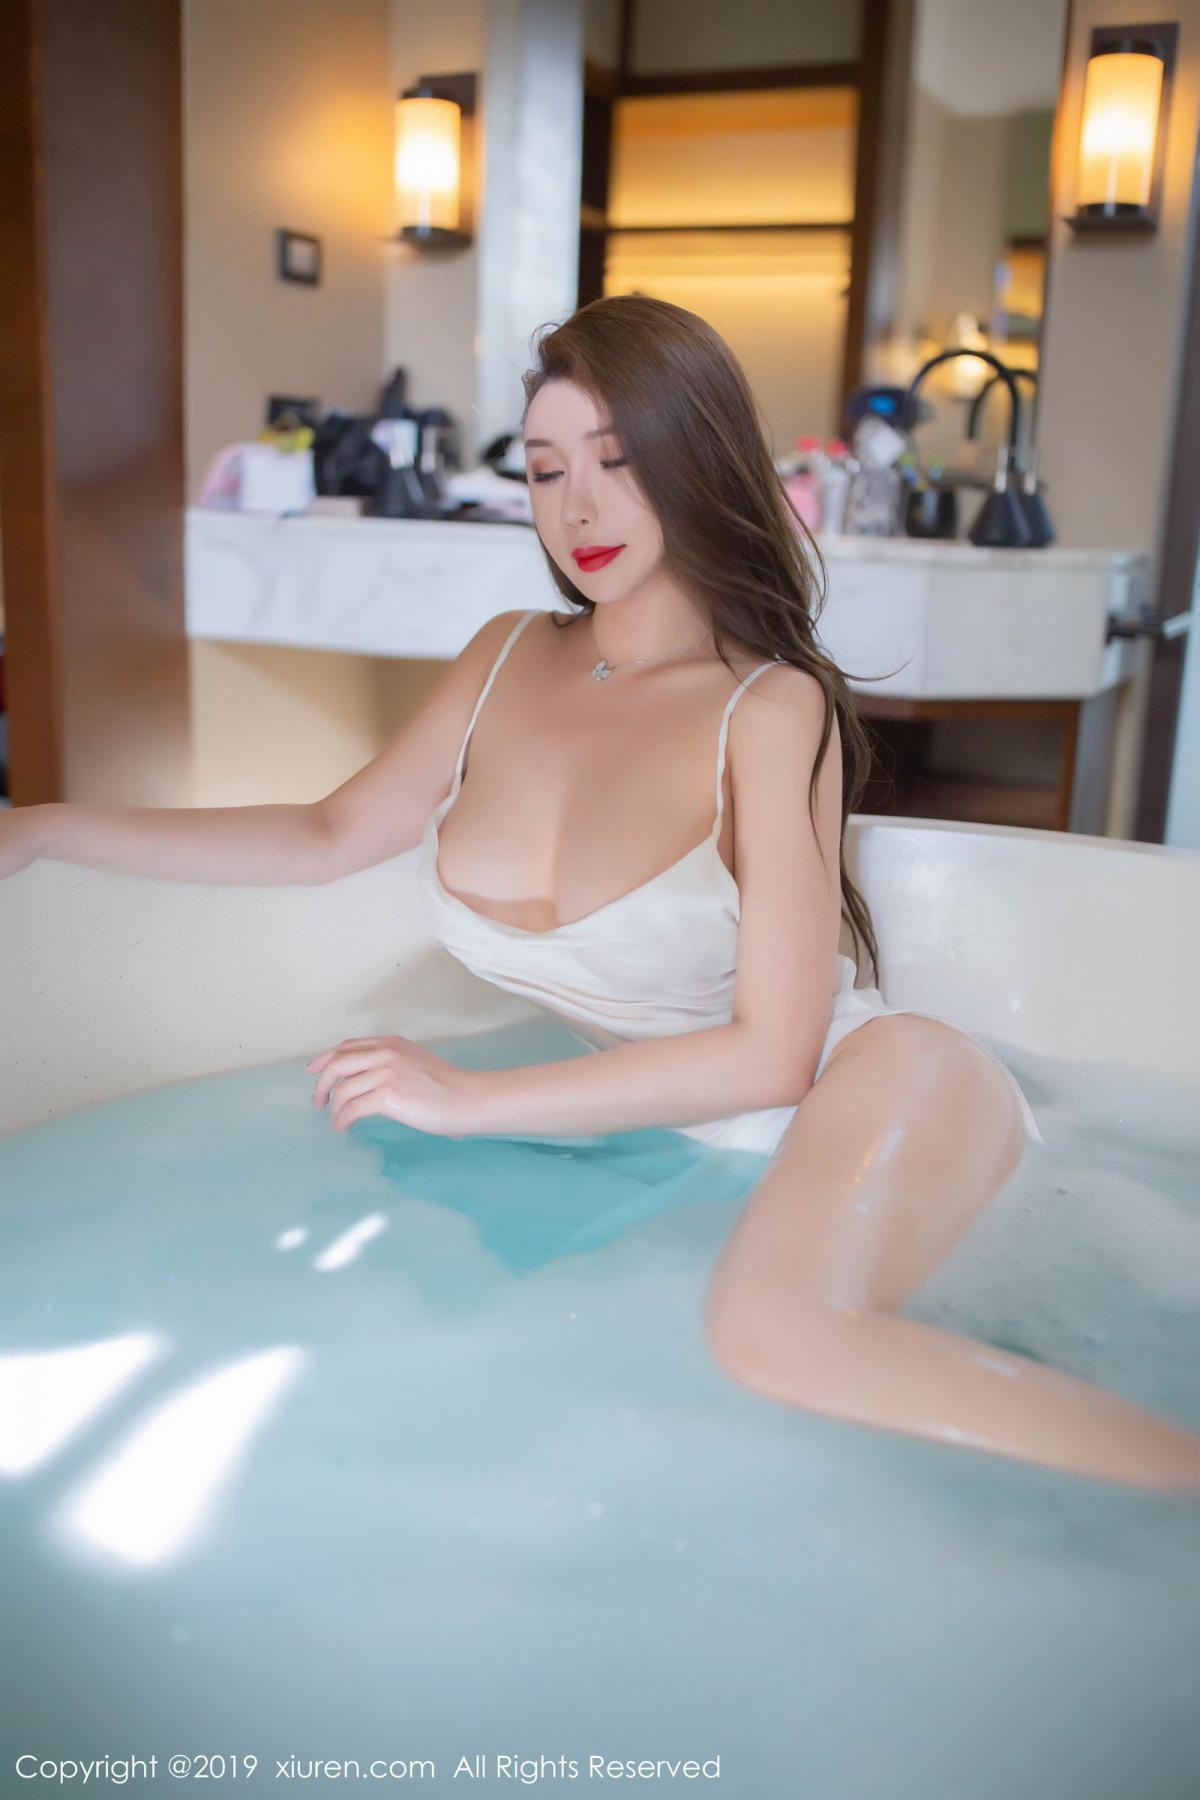 [XiuRen] Vol.1510 Egg Younisi 5P, Bathroom, Big Booty, Egg Younisi, Wet, Xiuren